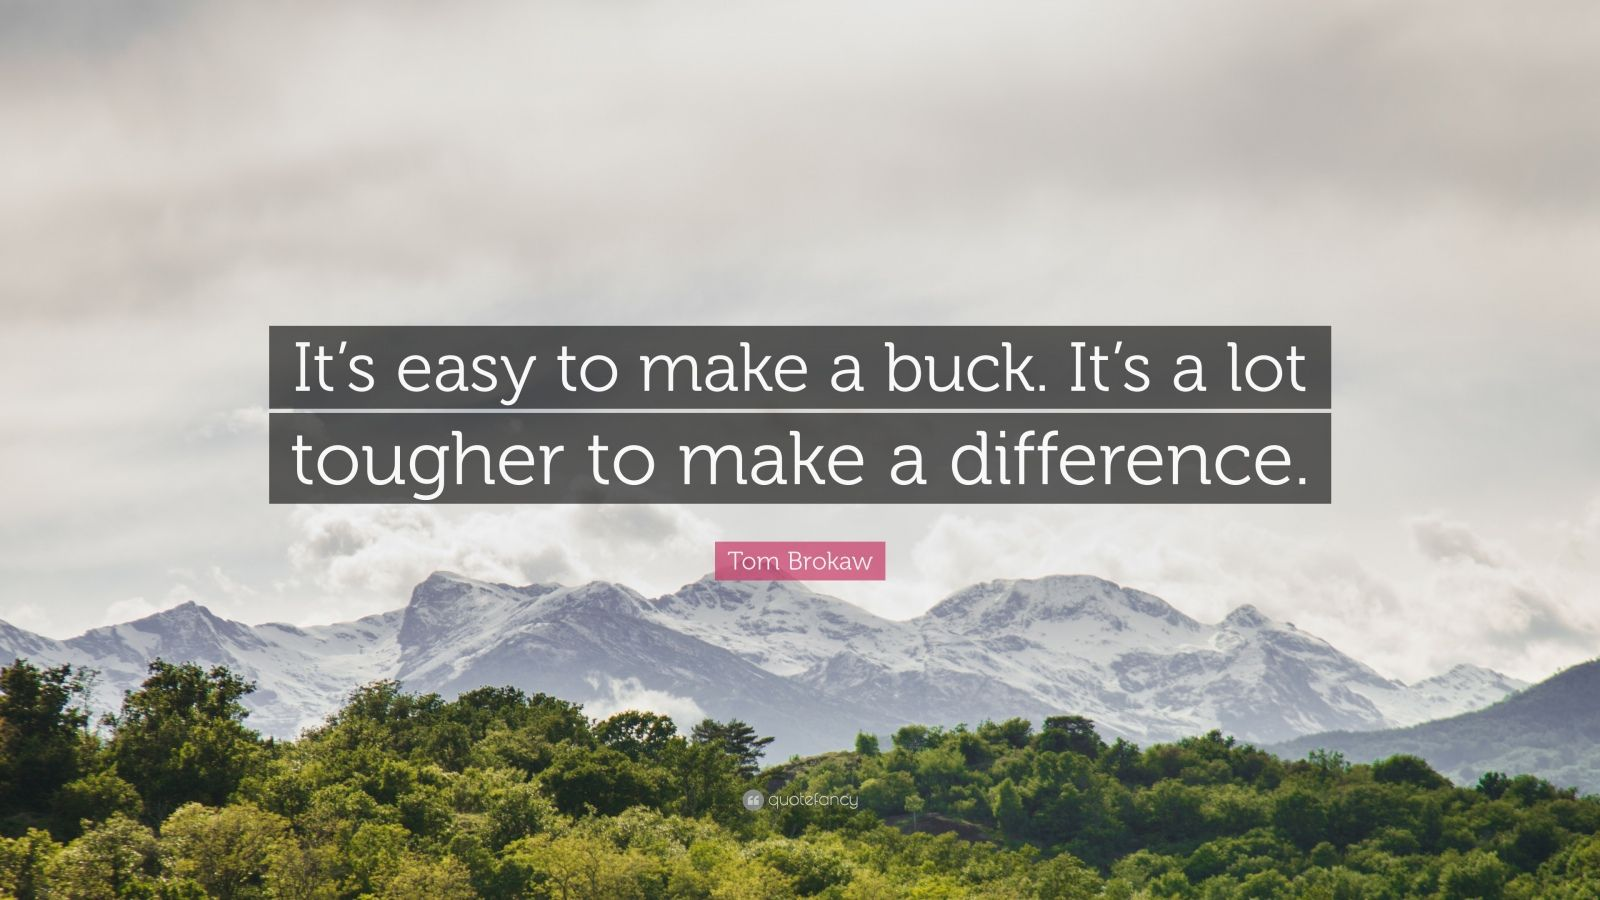 """Tom Brokaw Quote: """"It's easy to make a buck. It's a lot tougher to make a difference."""""""